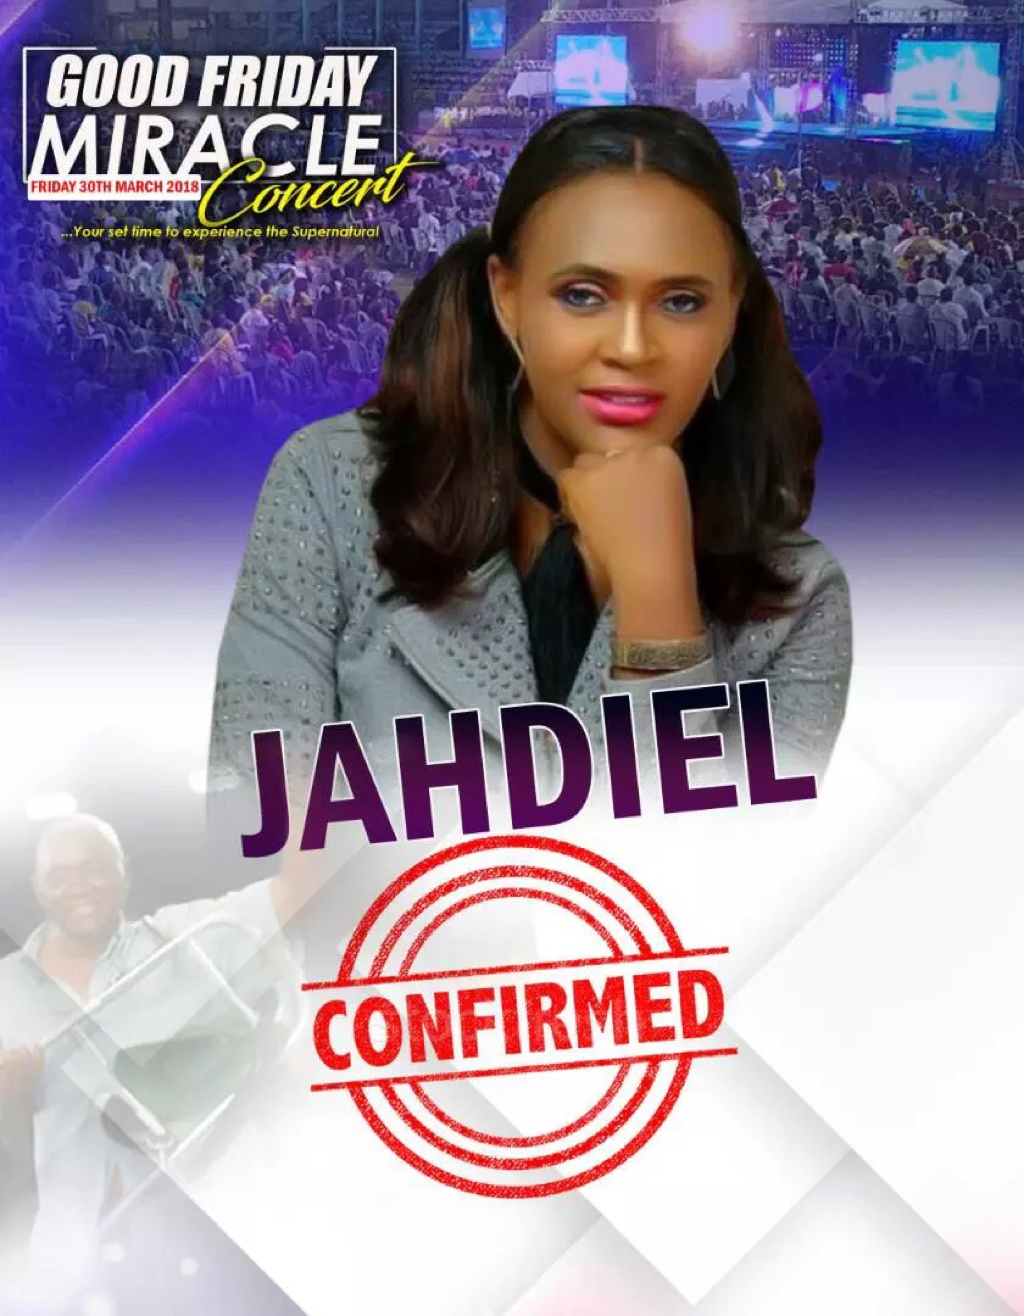 Ministering at the #GFMC2018 Jahdiel